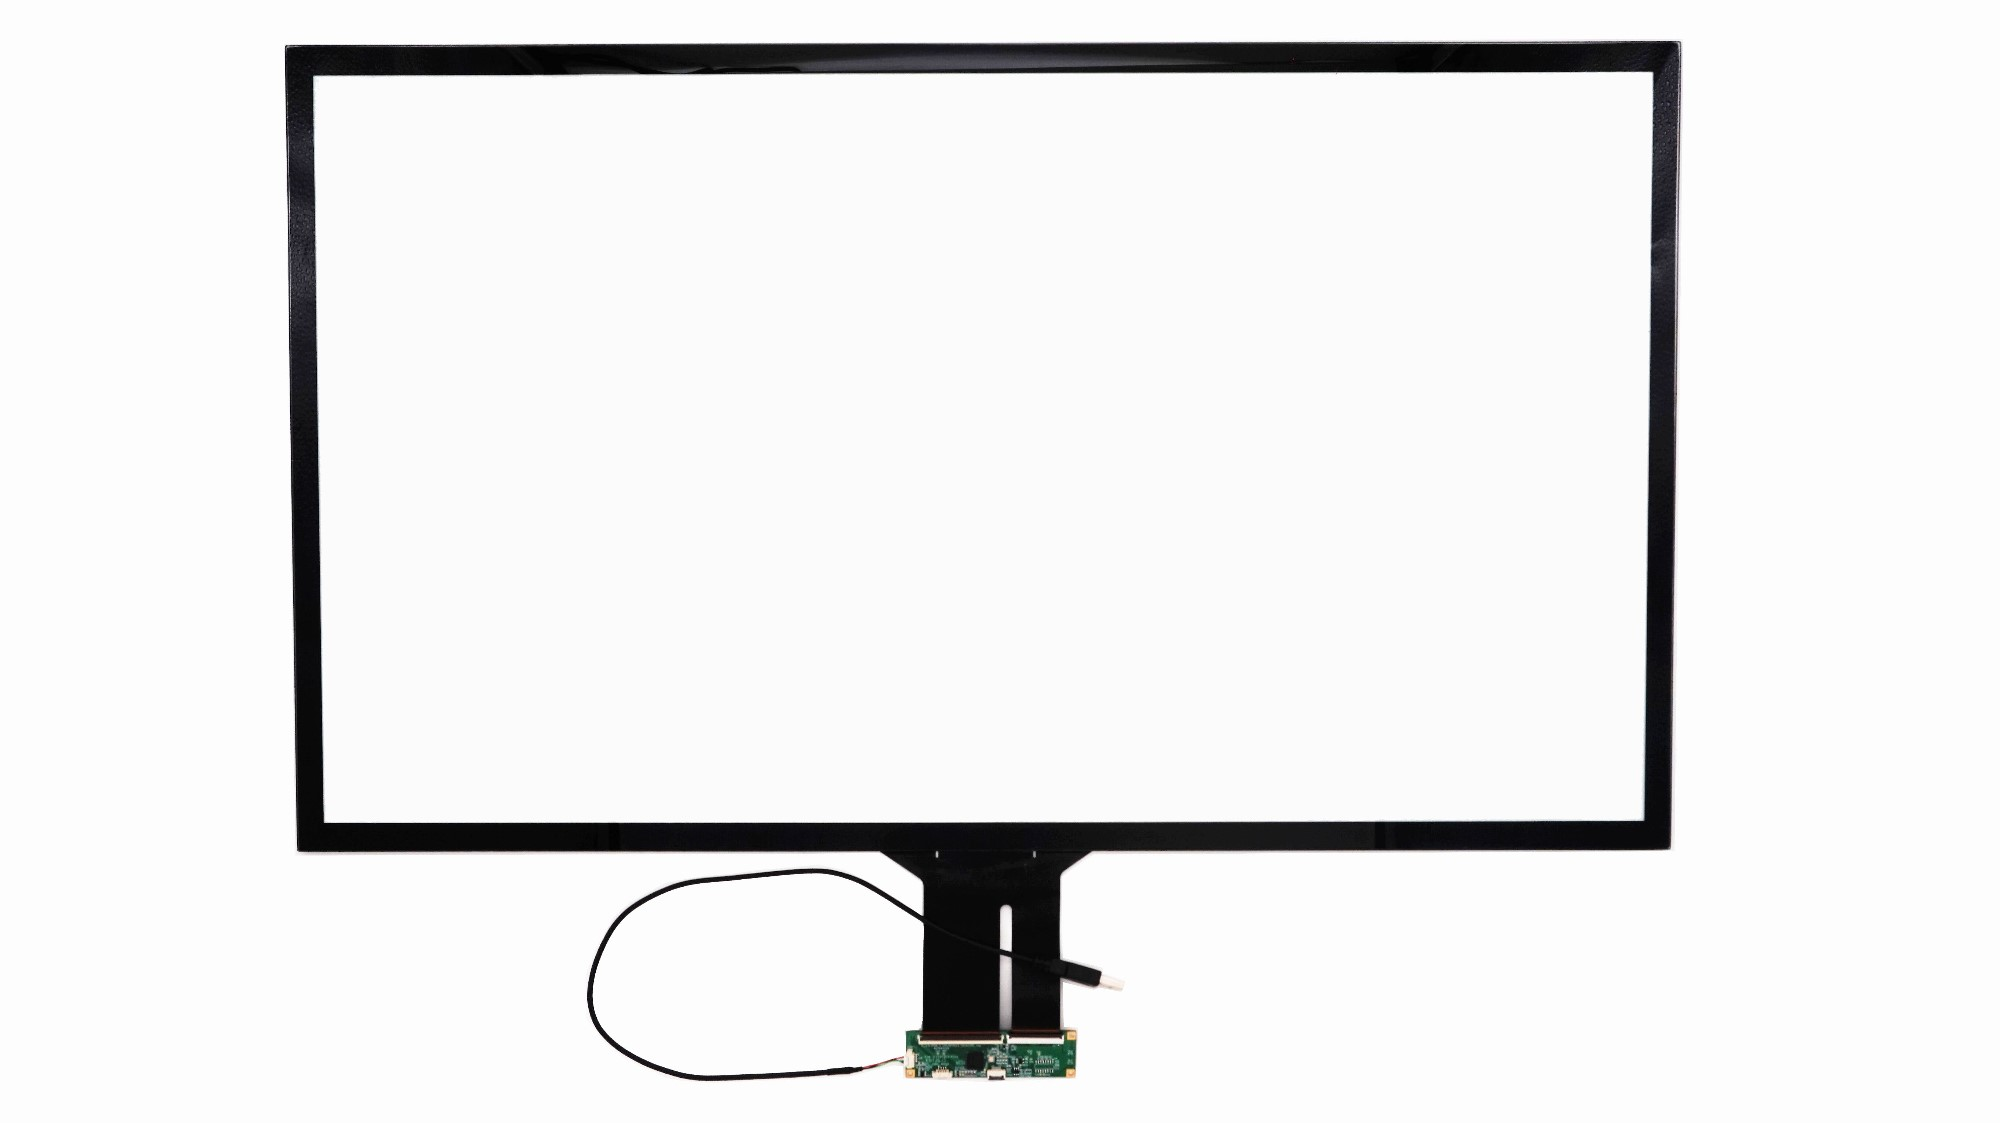 Hmi 32 Inch Touch Panel Usb Interface Muilt Points Touch